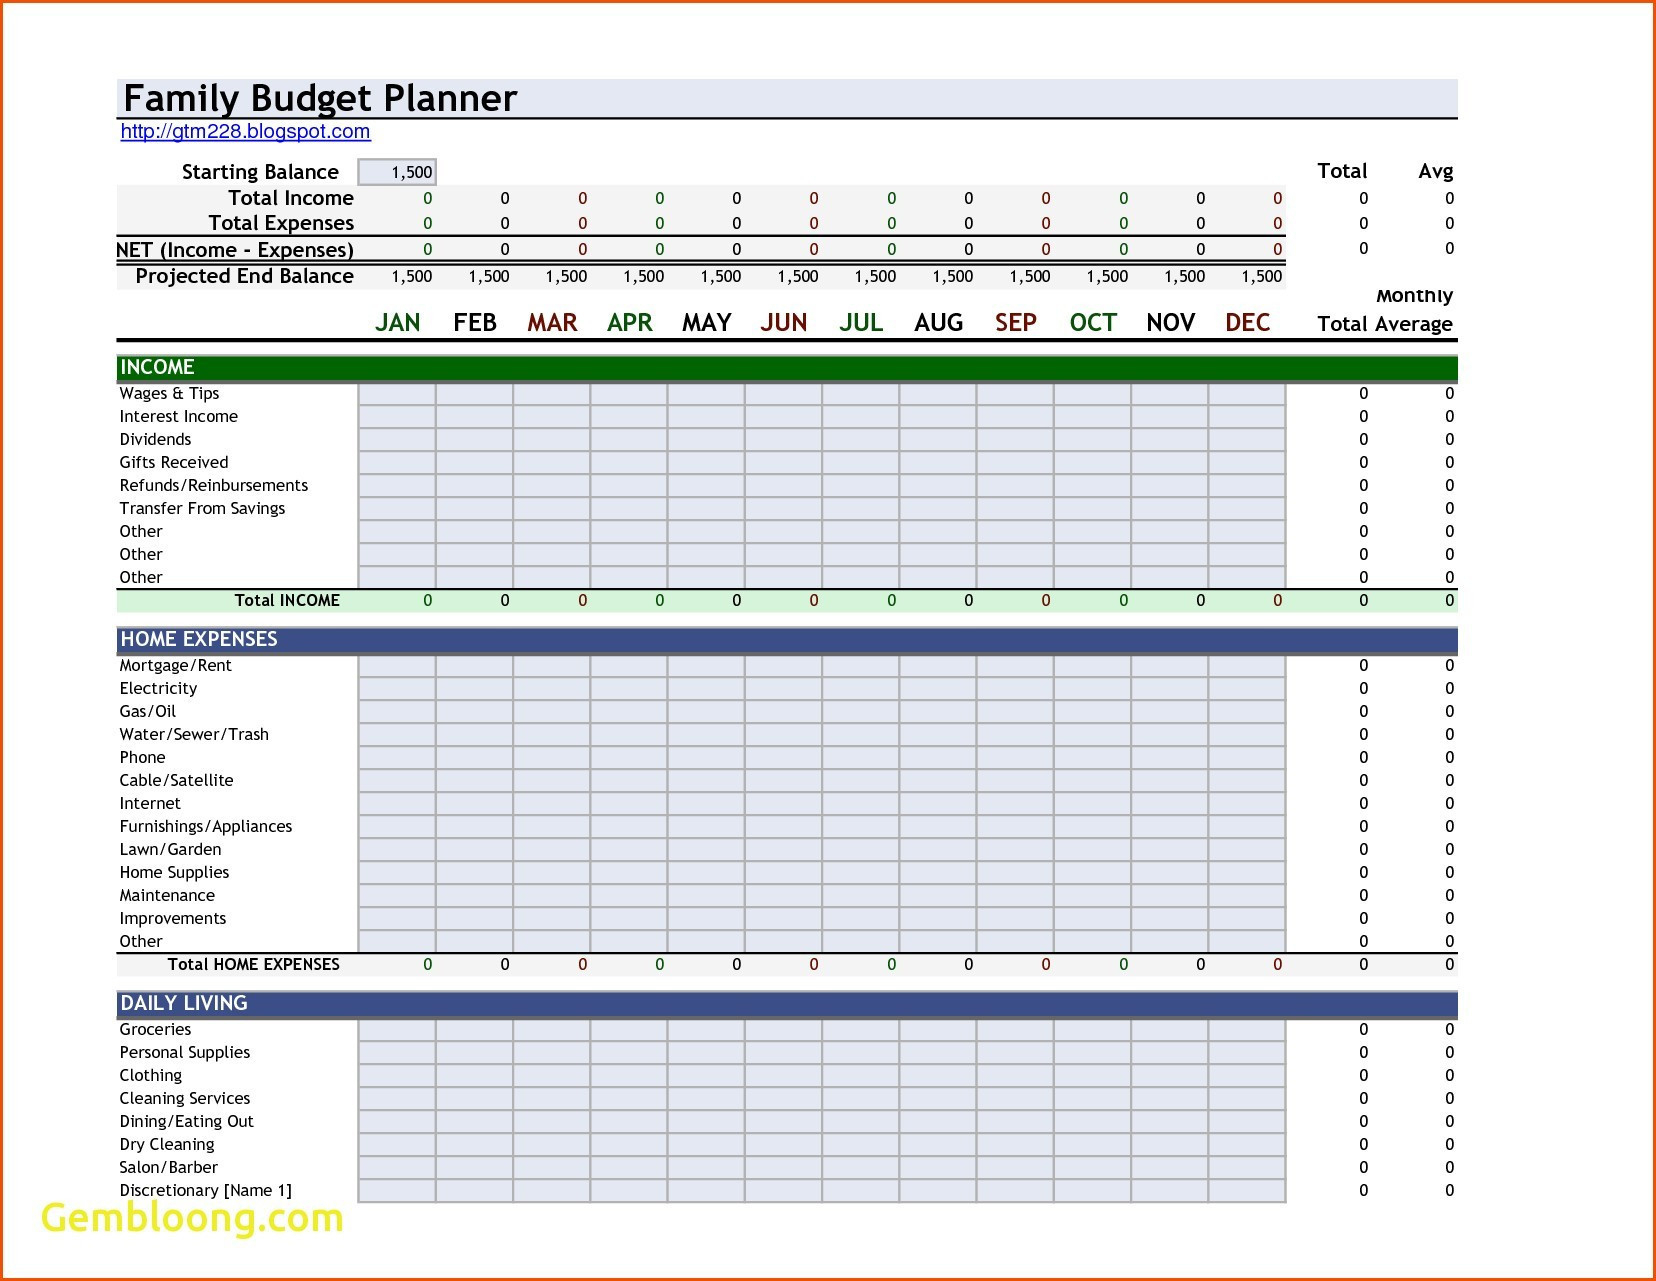 Household Budget Calculator Spreadsheet Then Book Bud Excel Template With Spreadsheet Budget Planner